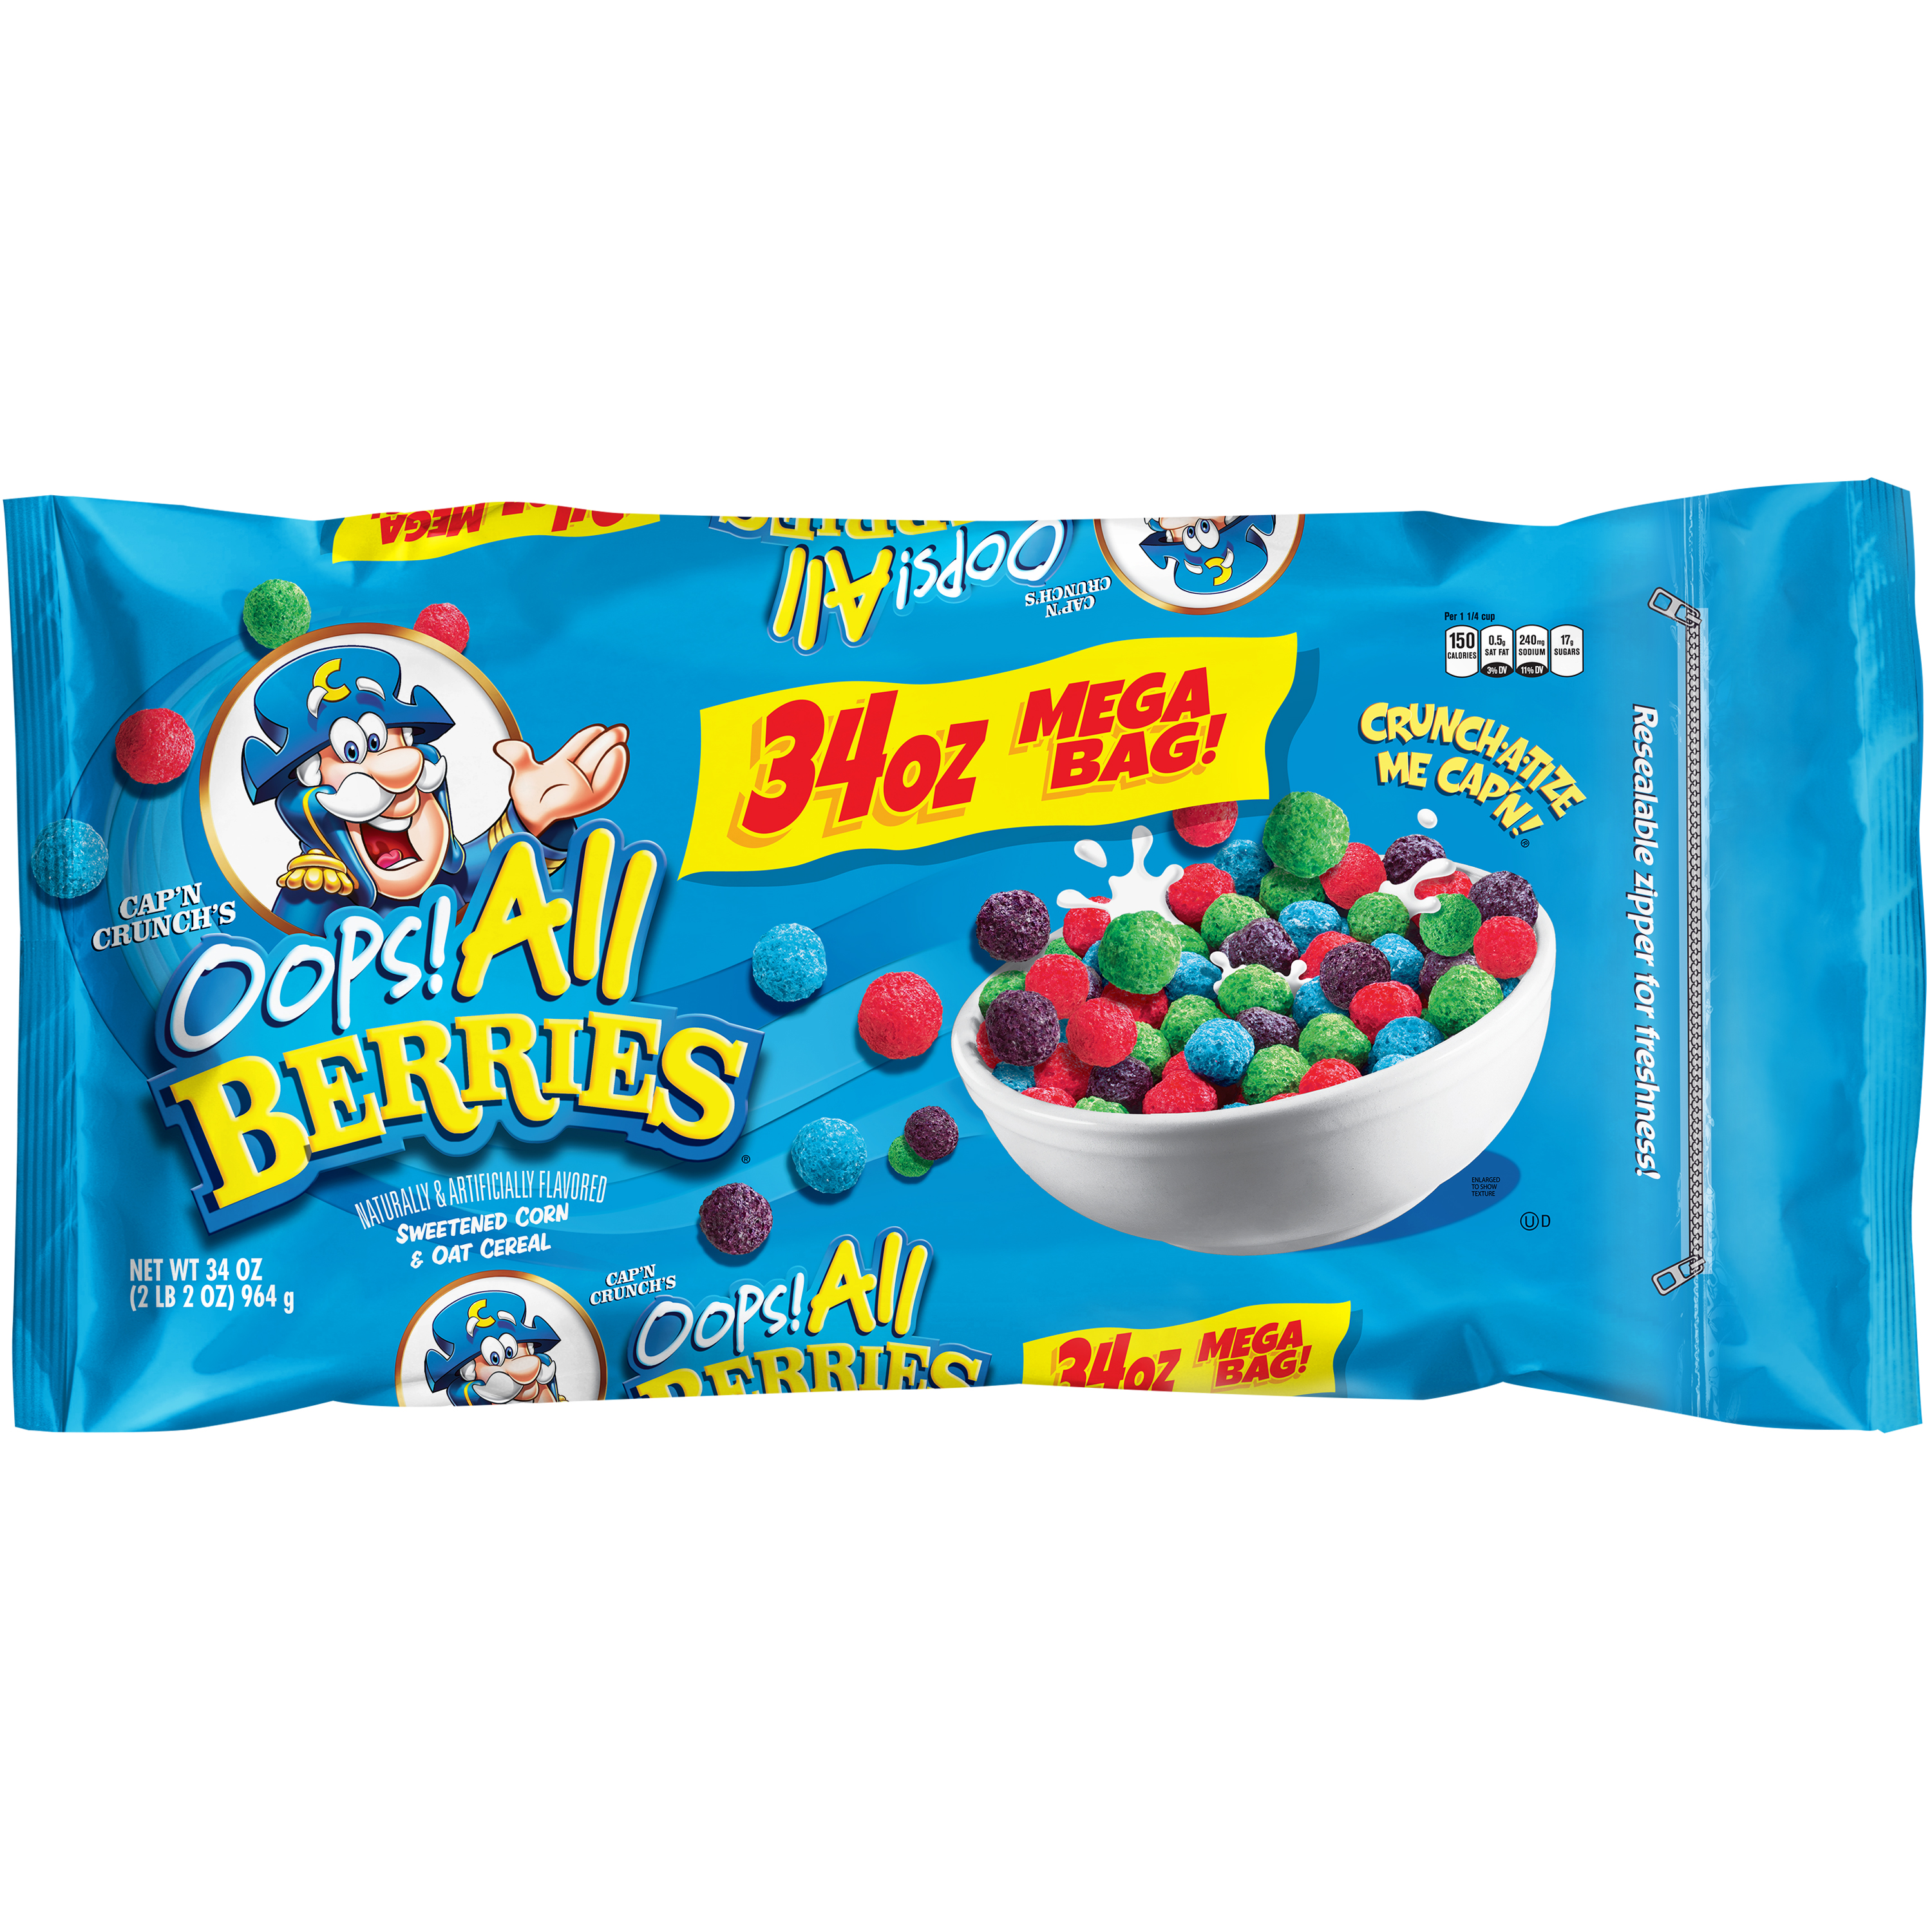 Oops All Berries Flavors / Box), and oops all berries (15.4 oz.